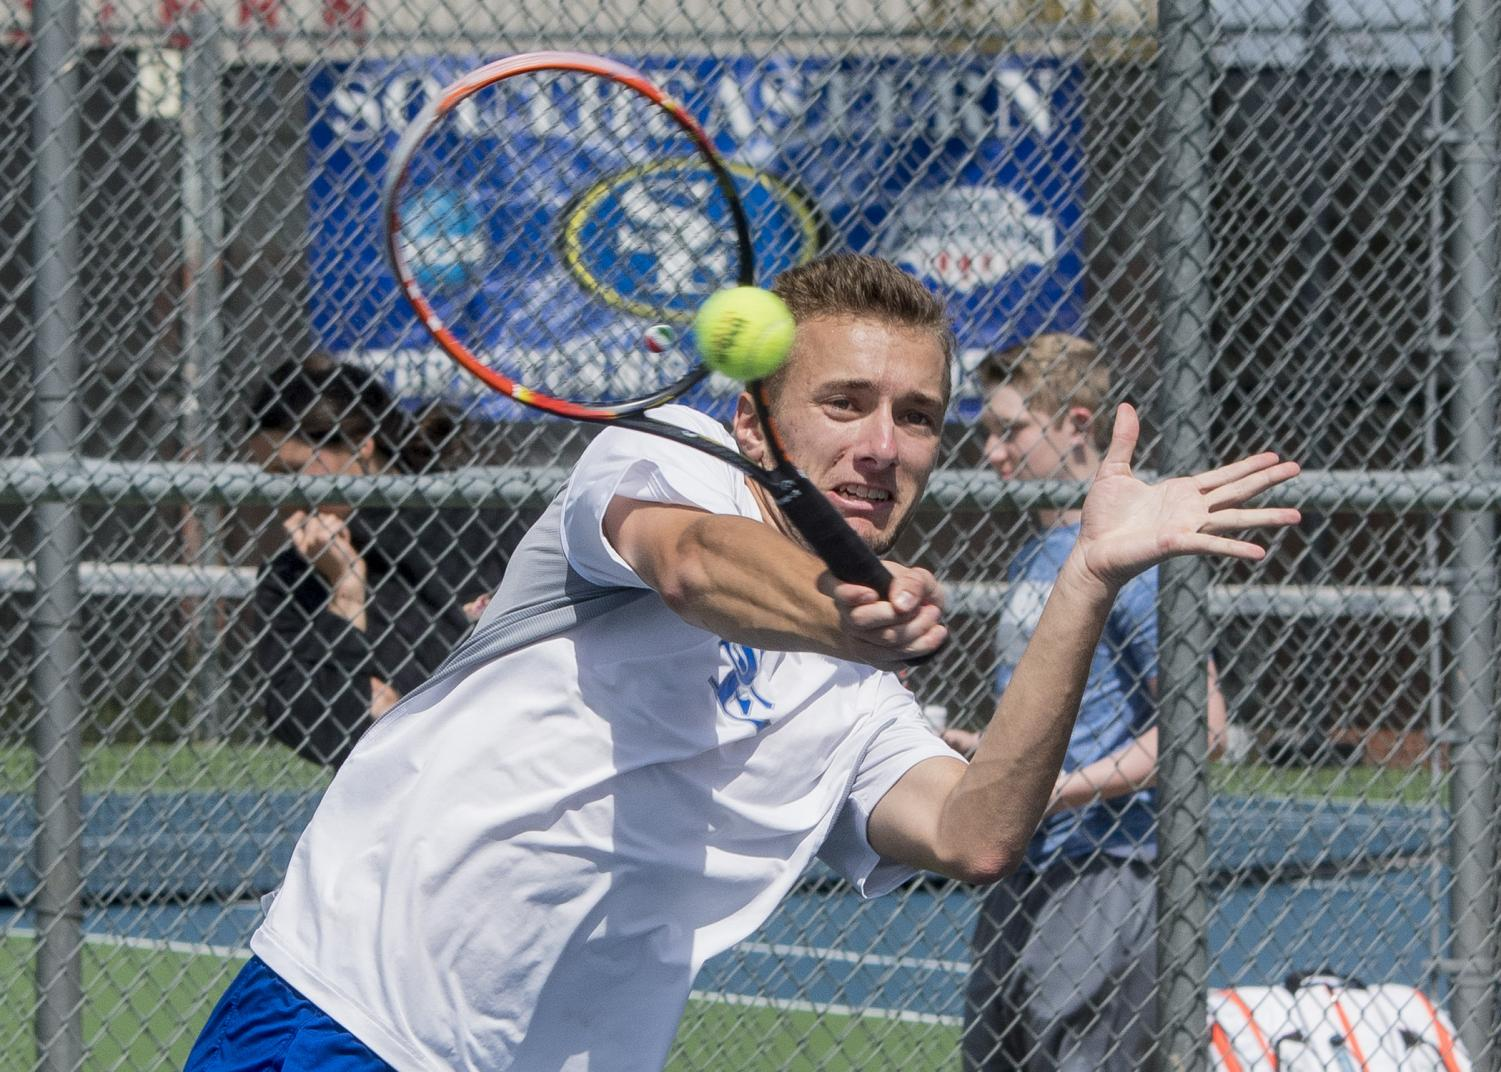 Southeastern men's tennis dropped a trio of doubles matches and struggled to recover in a 5-1 loss to Midwestern on March 31.